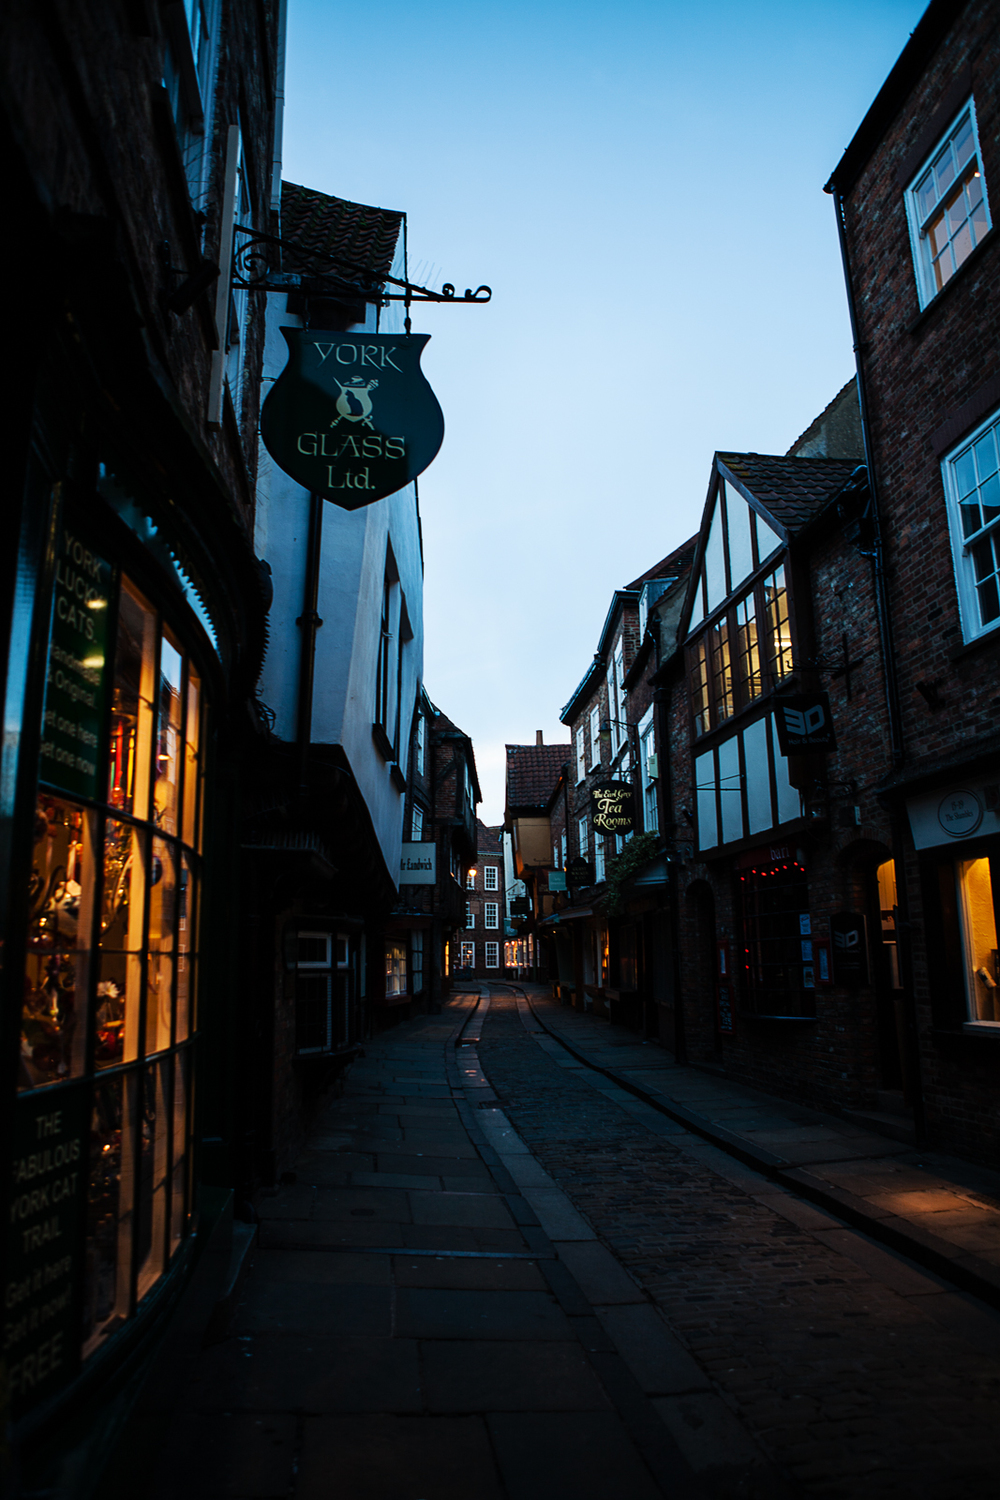 ©Jennifer Bailey 2013 The Shambles, York, England